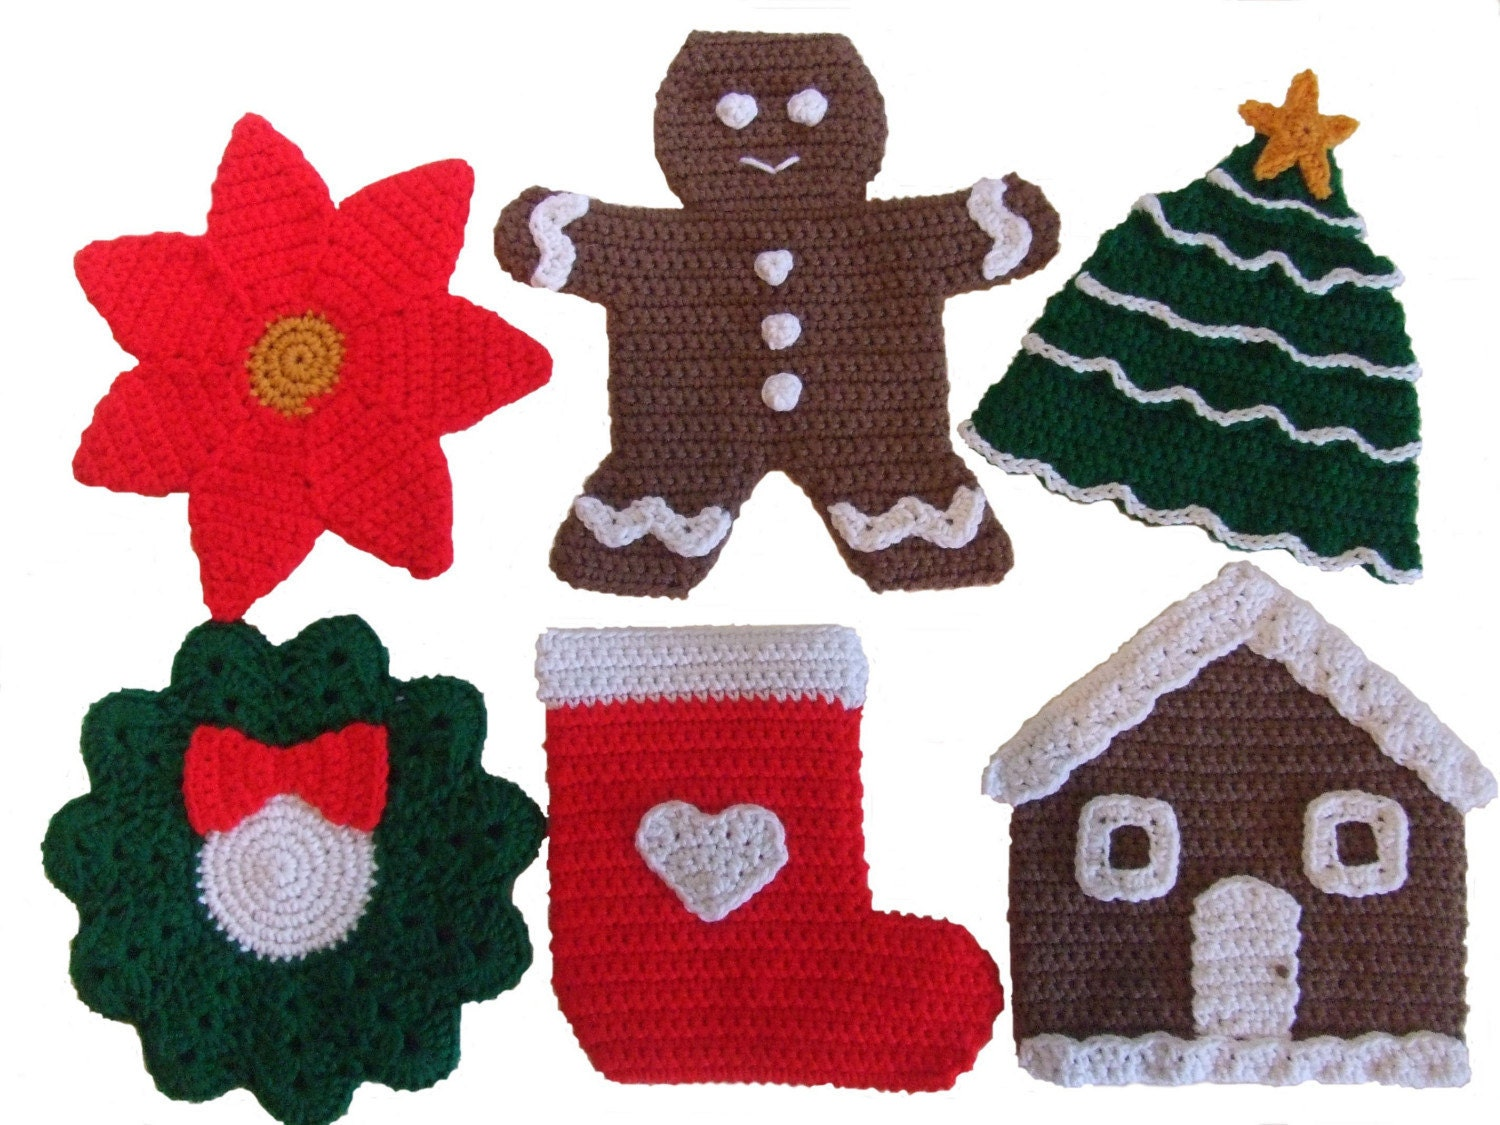 Free Downloadable Christmas Crochet Patterns : Crochet Pattern Christmas Potholders Digital Download